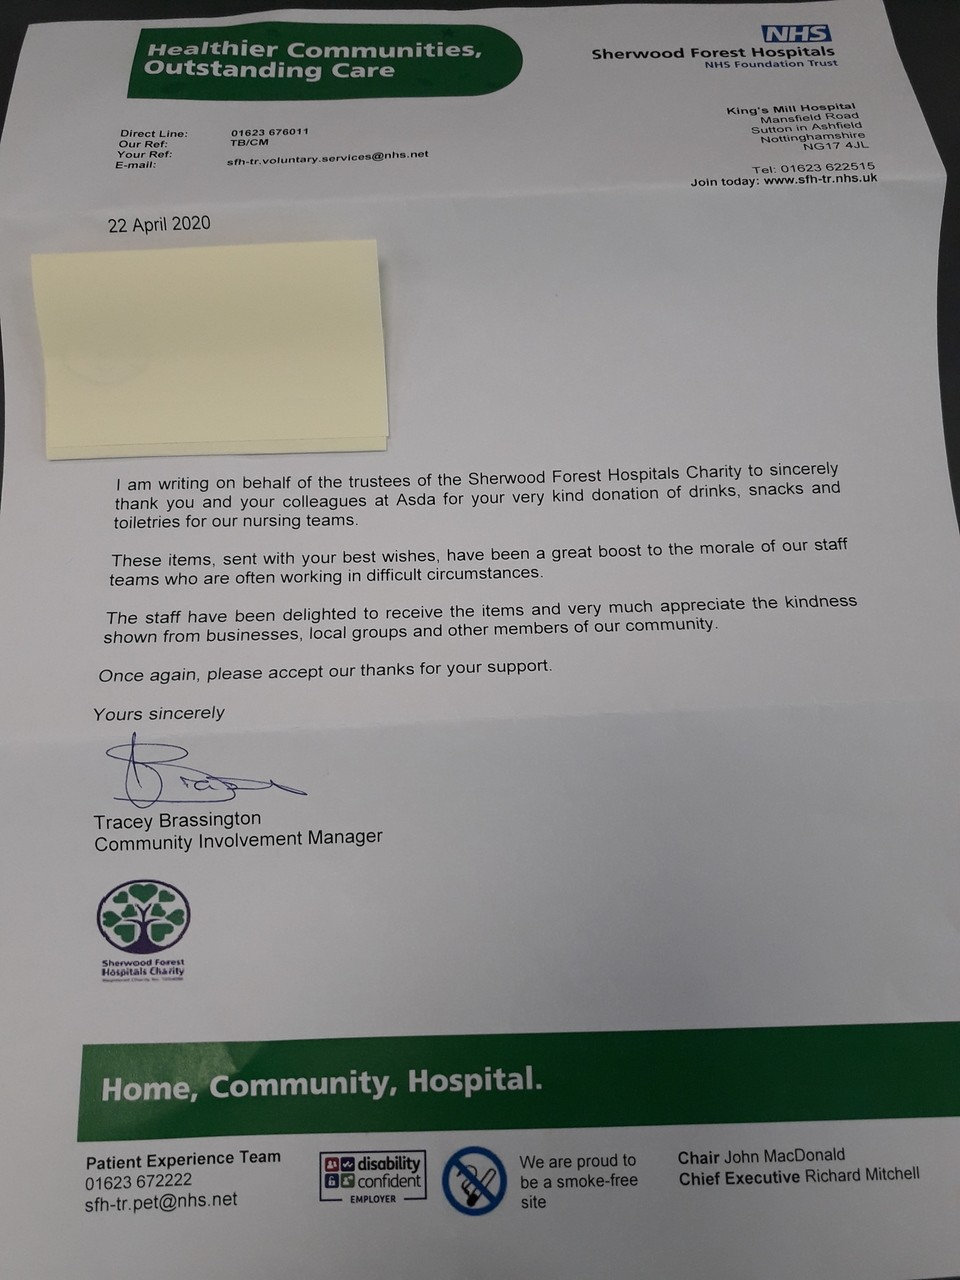 Received a lovley letter from Kings mill hospital thanking us for our donation of items for the staff | Asda Mansfield